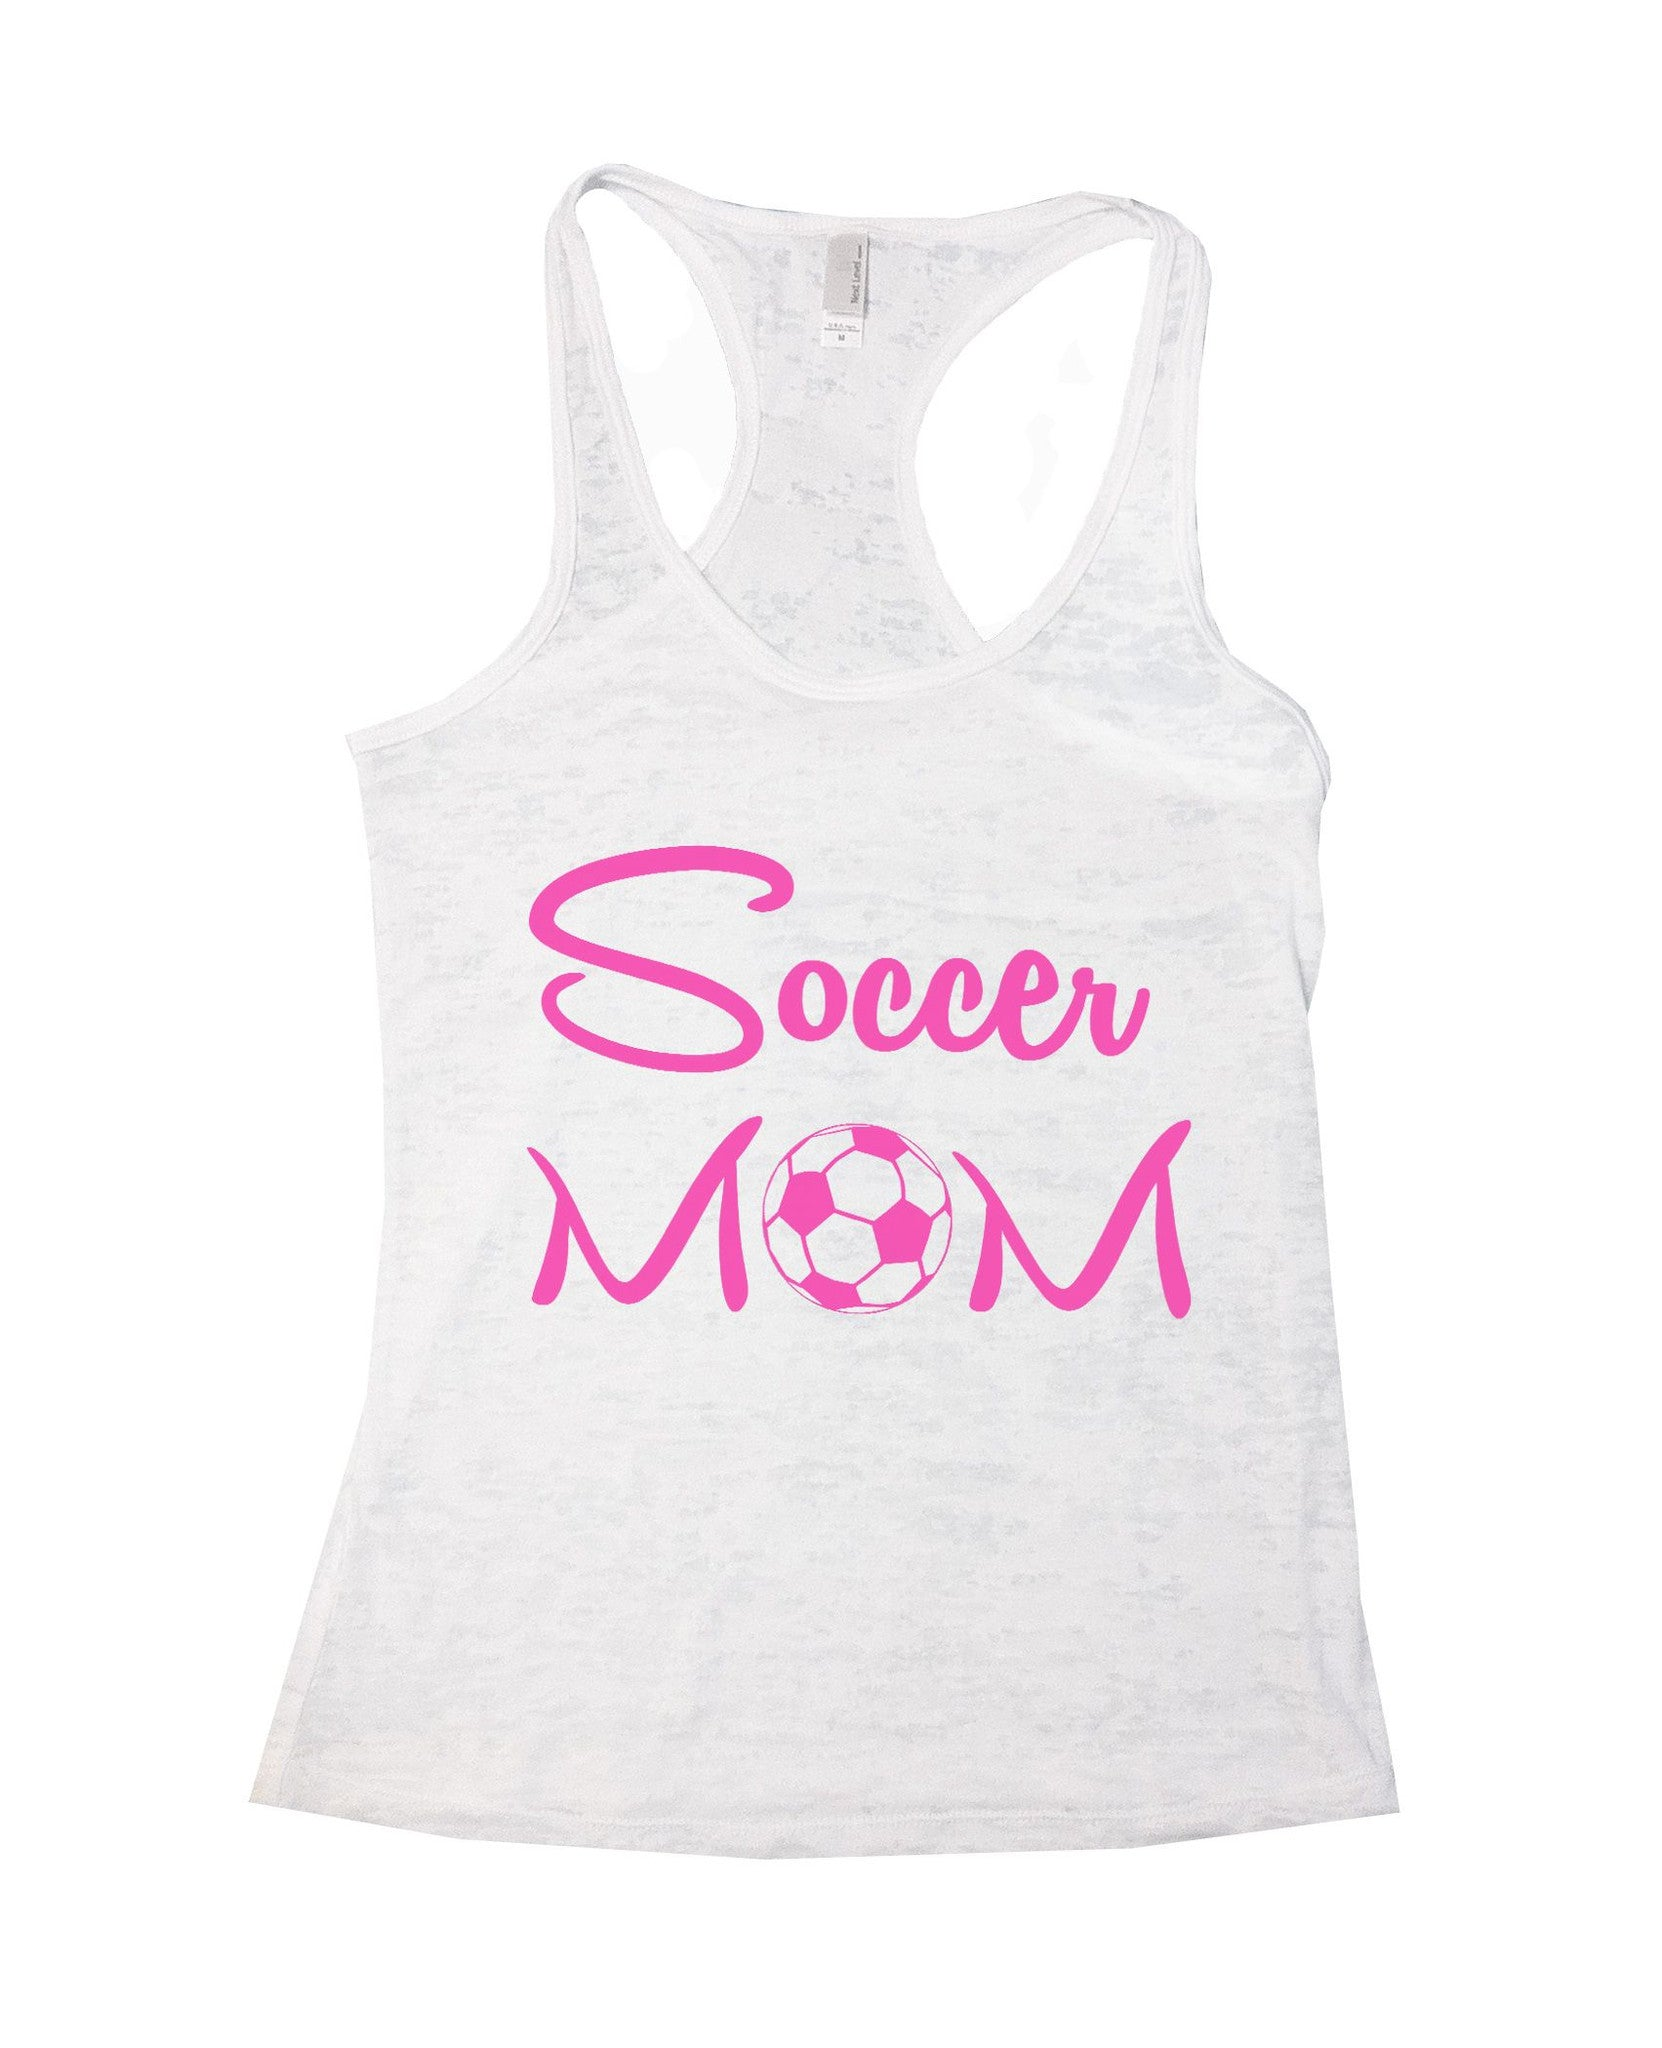 Soccer Mom Burnout Tank Top By BurnoutTankTops.com - 658 - Funny Shirts Tank Tops Burnouts and Triblends  - 6